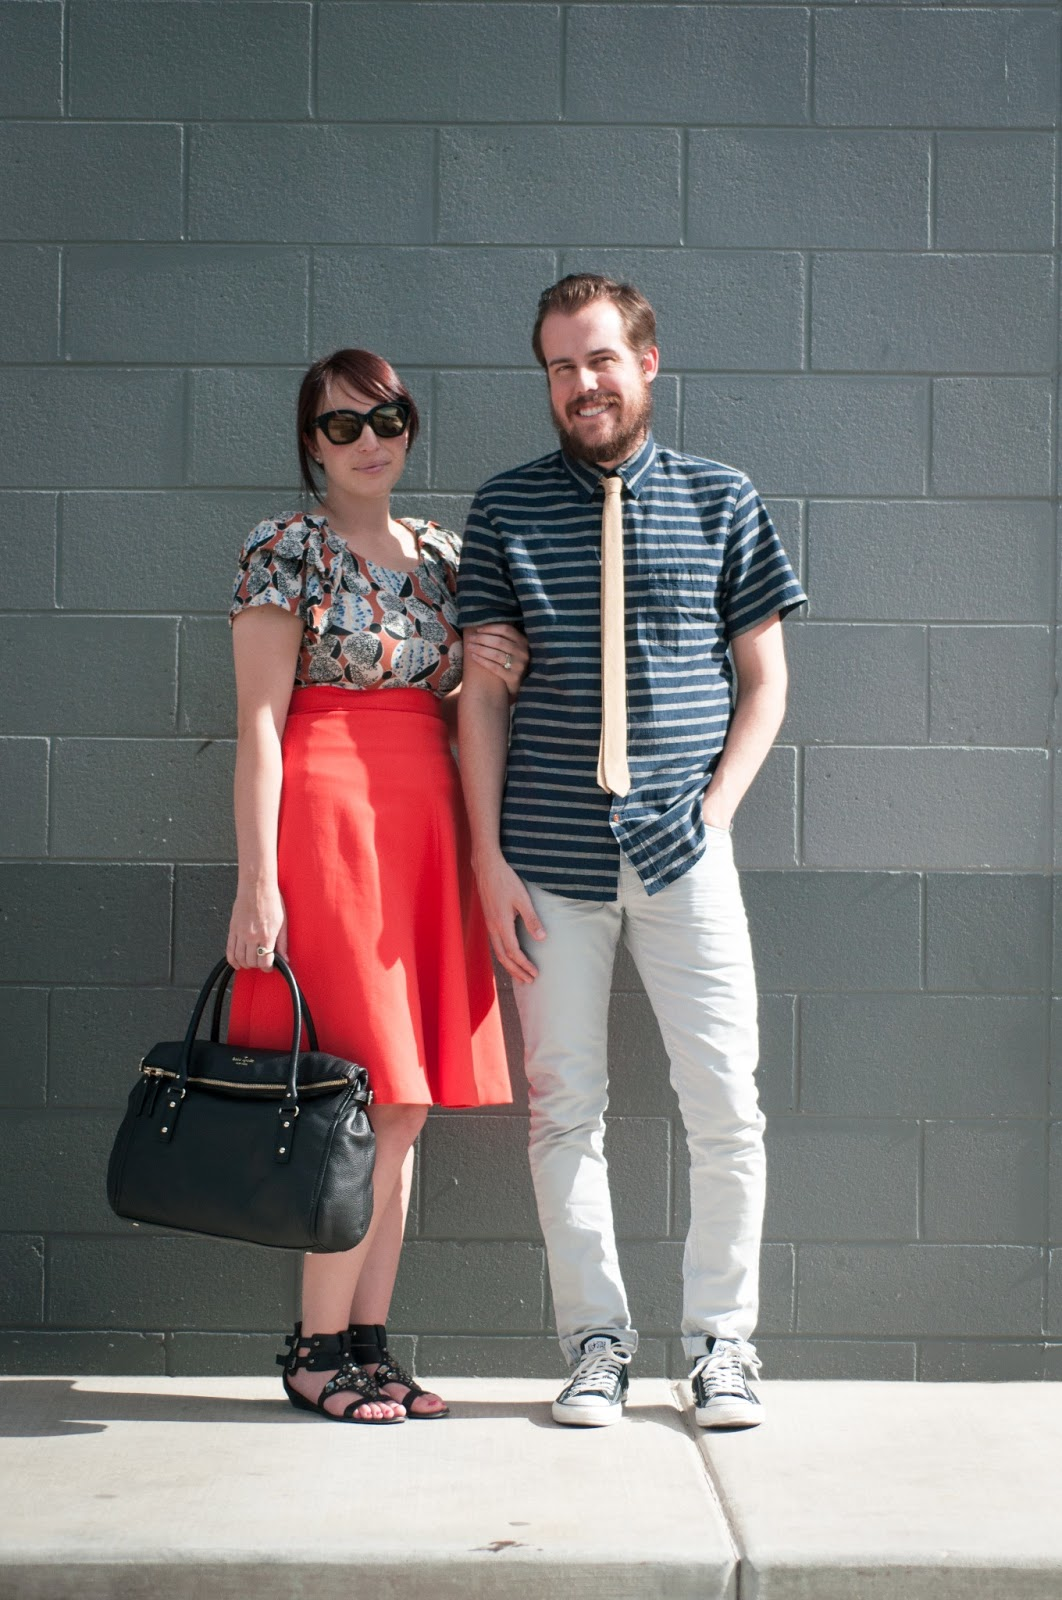 couples blog, ootd, fashion blog, style blog, mens style blog, mens fashion blog, kate spade new york, karen walker